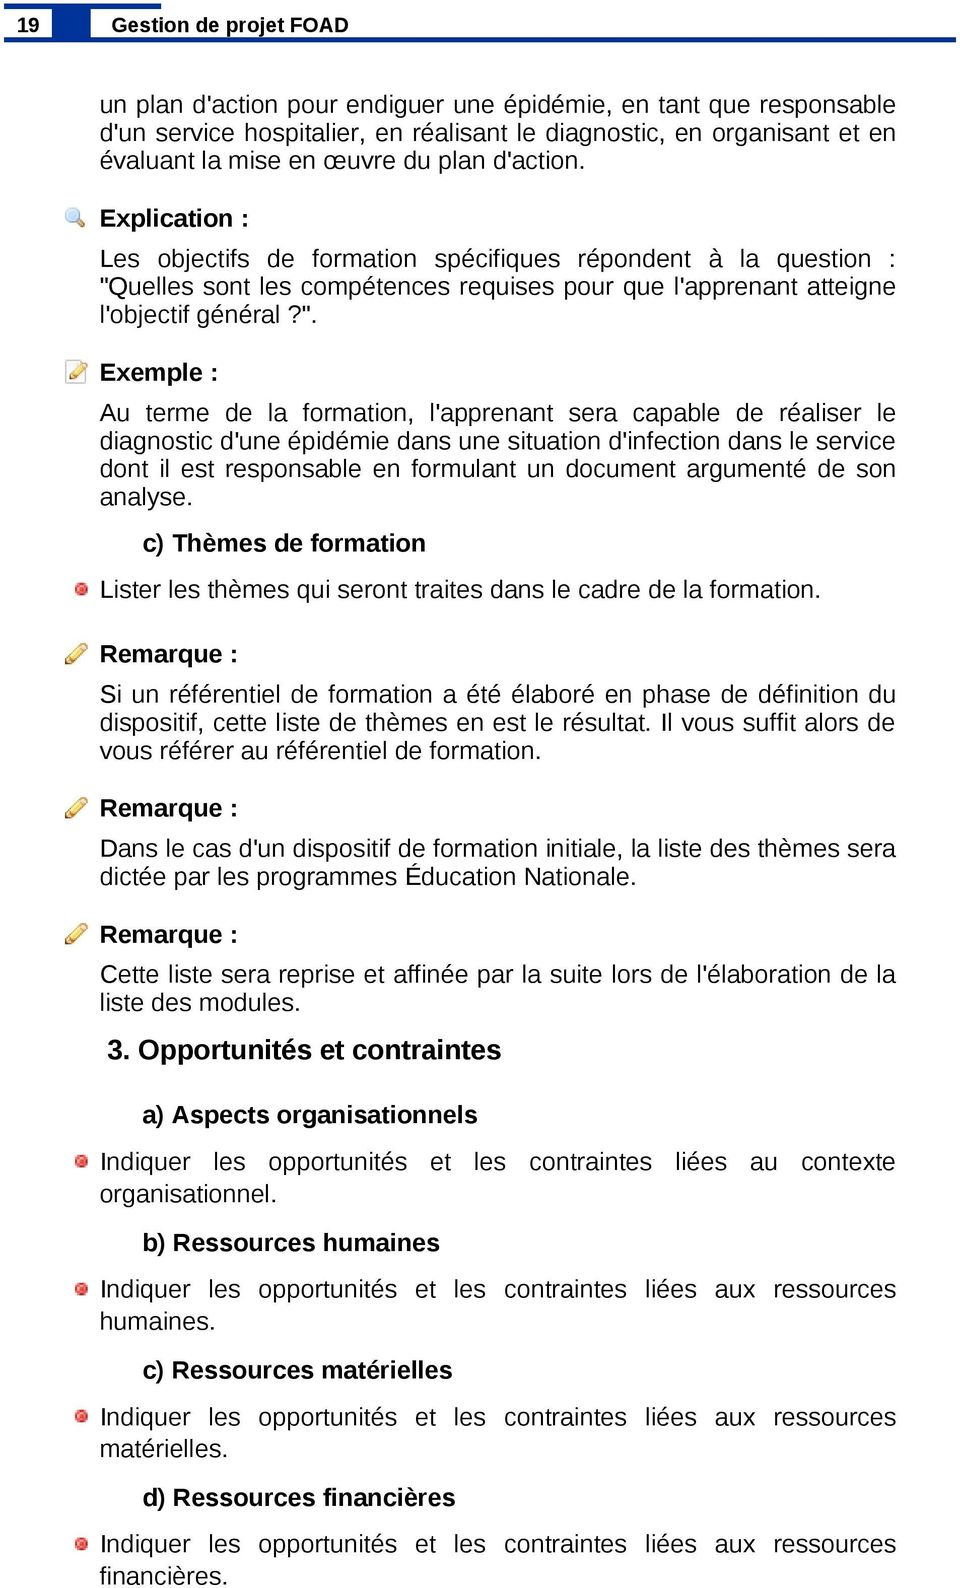 comment faire un cv sur canvas